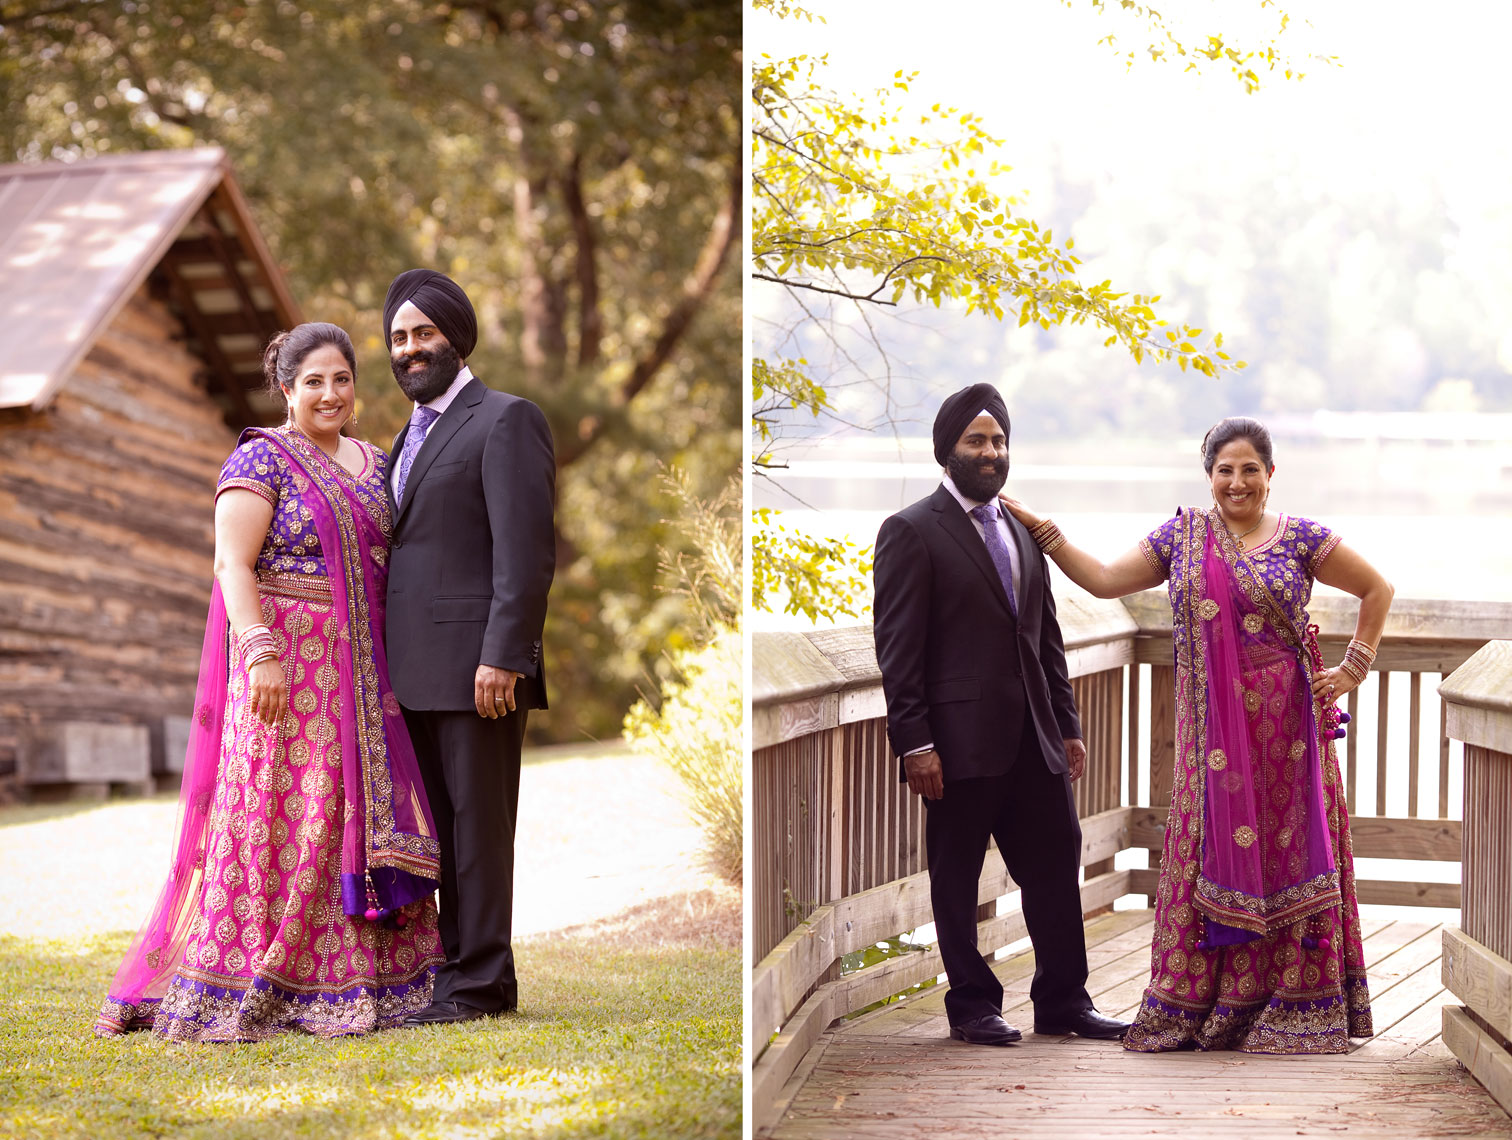 Kathi_Littwin_Photography_Sikh_Wedding_4022